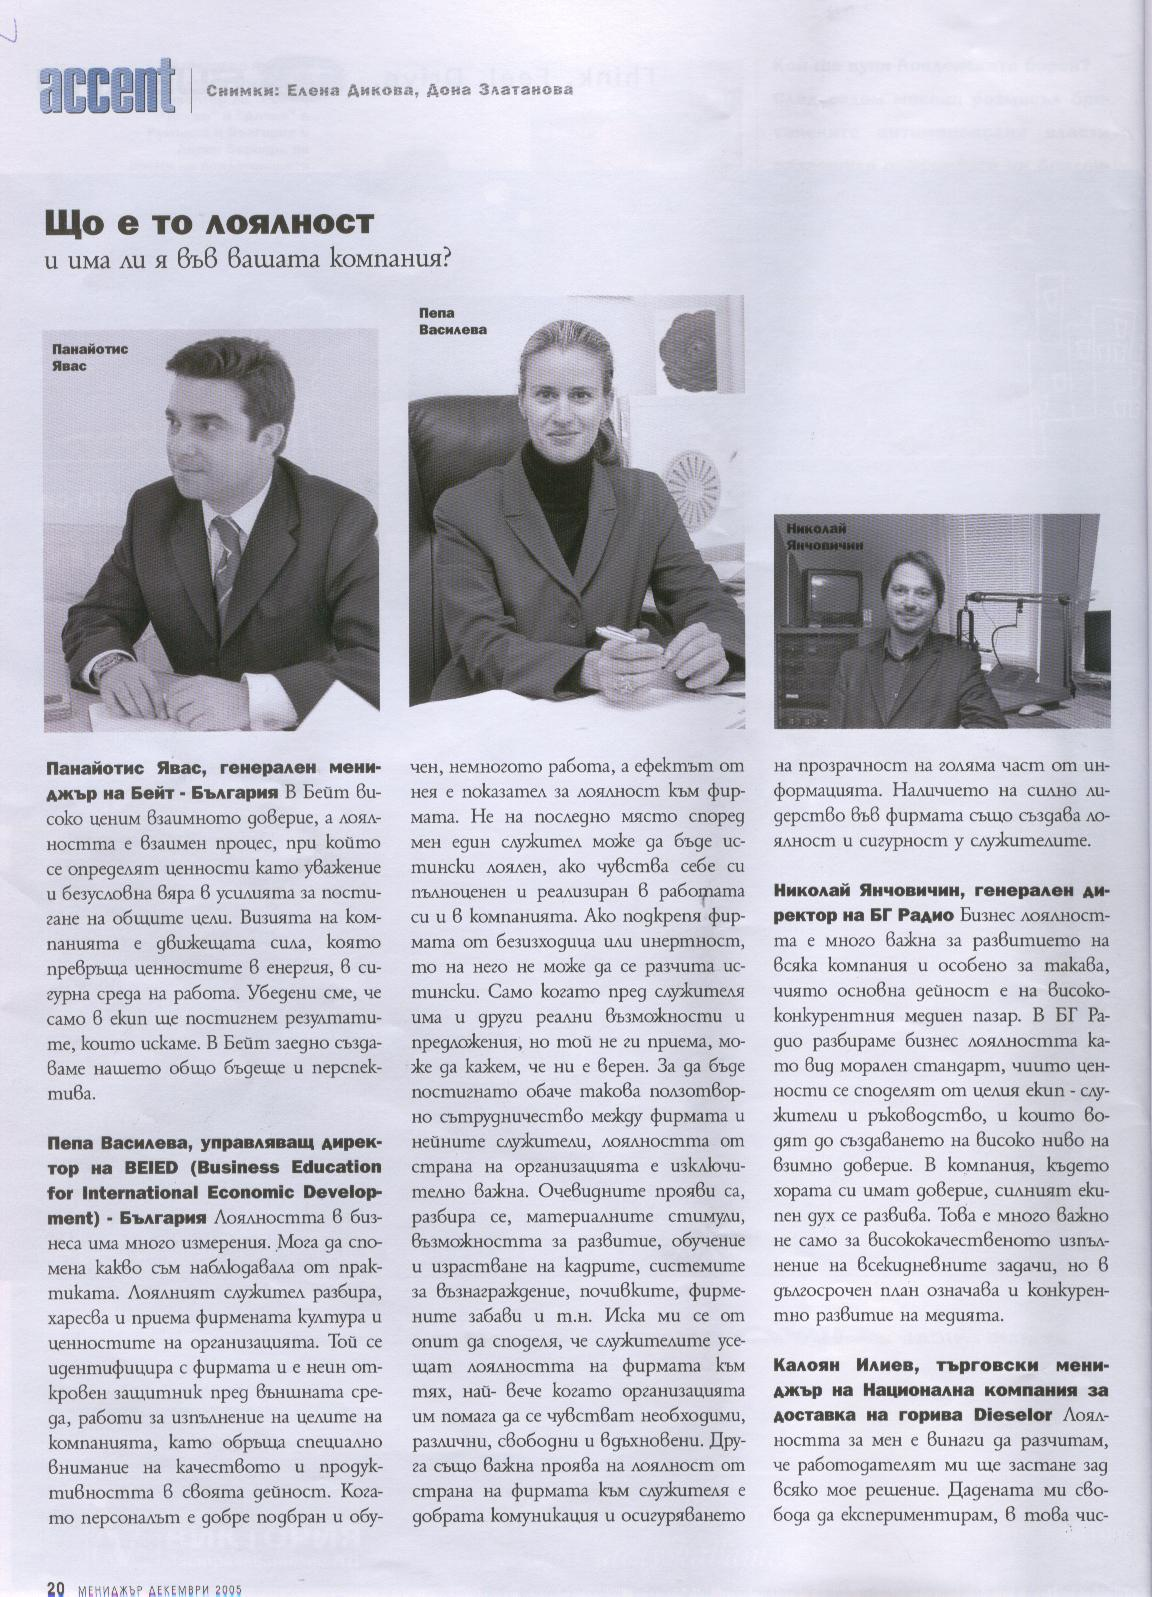 Accent in Manager magazine - Pepa Vassileva